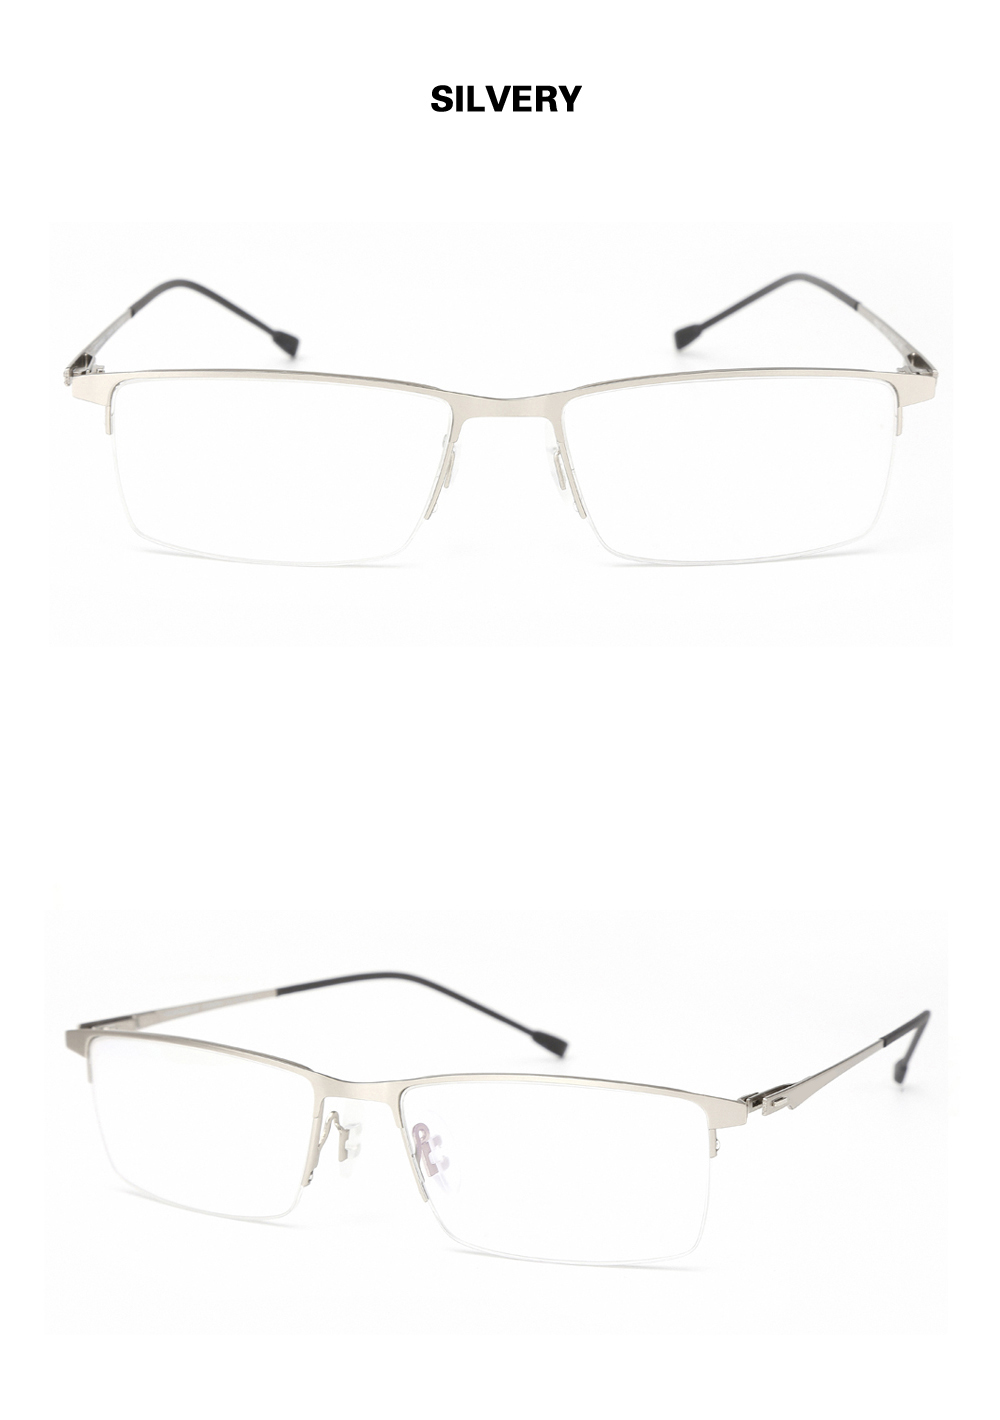 cc4ee0a39b Chashma Brand Design Glasses Frame Fashion Alloy Eyeglass Semi Frame  Spectacle Frame Mens Optical Spectacles Frames Male. Size 1 YS4 YS5 YS2 YS3  ...